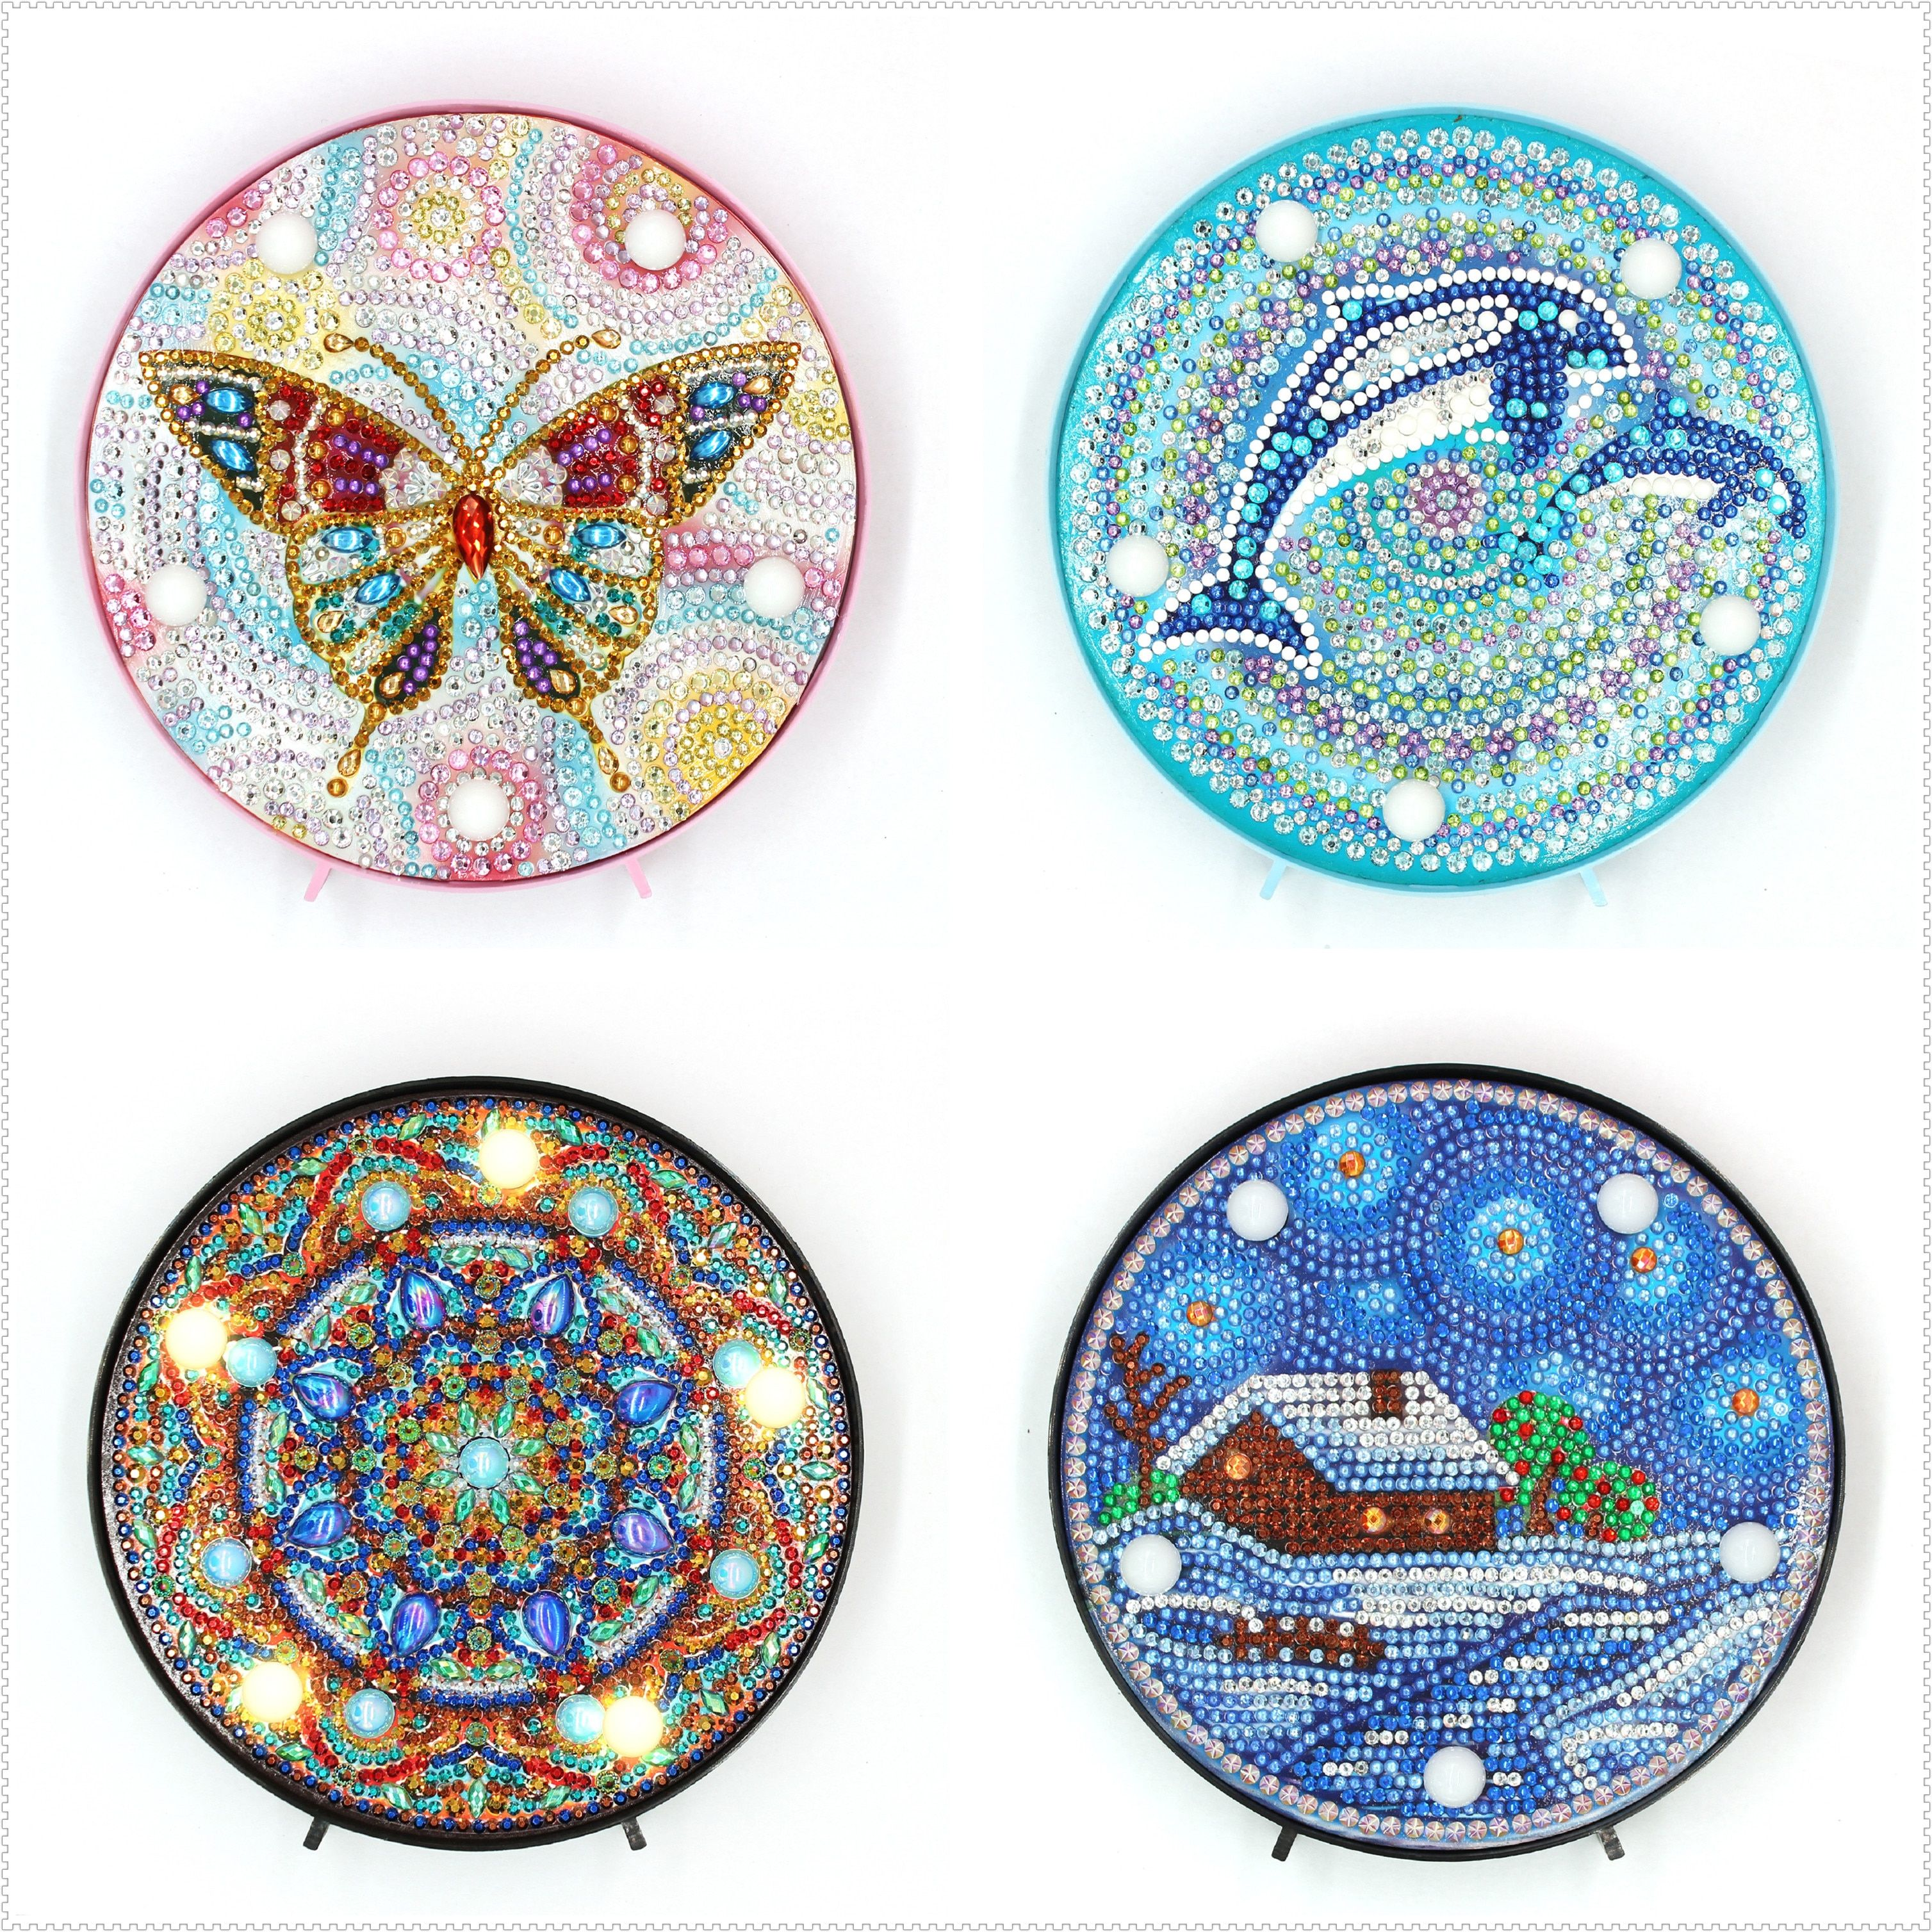 Shirliben Hot Sale Round Circle Animal Mandala Landscape Diy Diamond Painting Led Light Lamp On The Table Round Shinny Beads